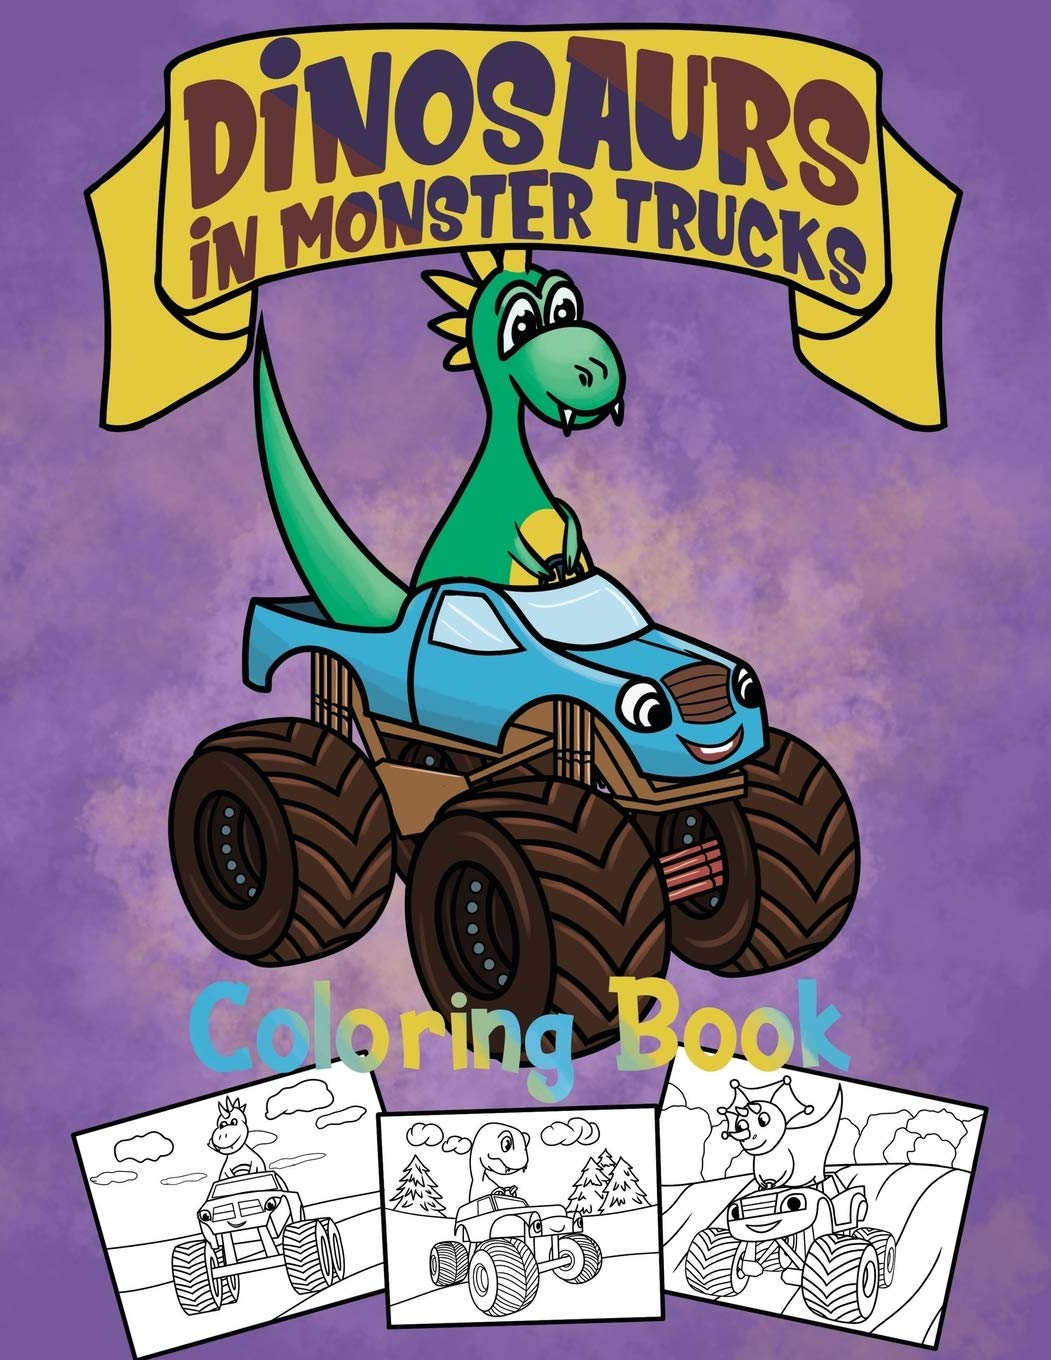 Dinosaurs In Monster Trucks Coloring Book Dinosaur Coloring Book For Kids Ages 4 8 Gift For Boys Coloring Books Actiondays 9798656950145 Amazon Com Books